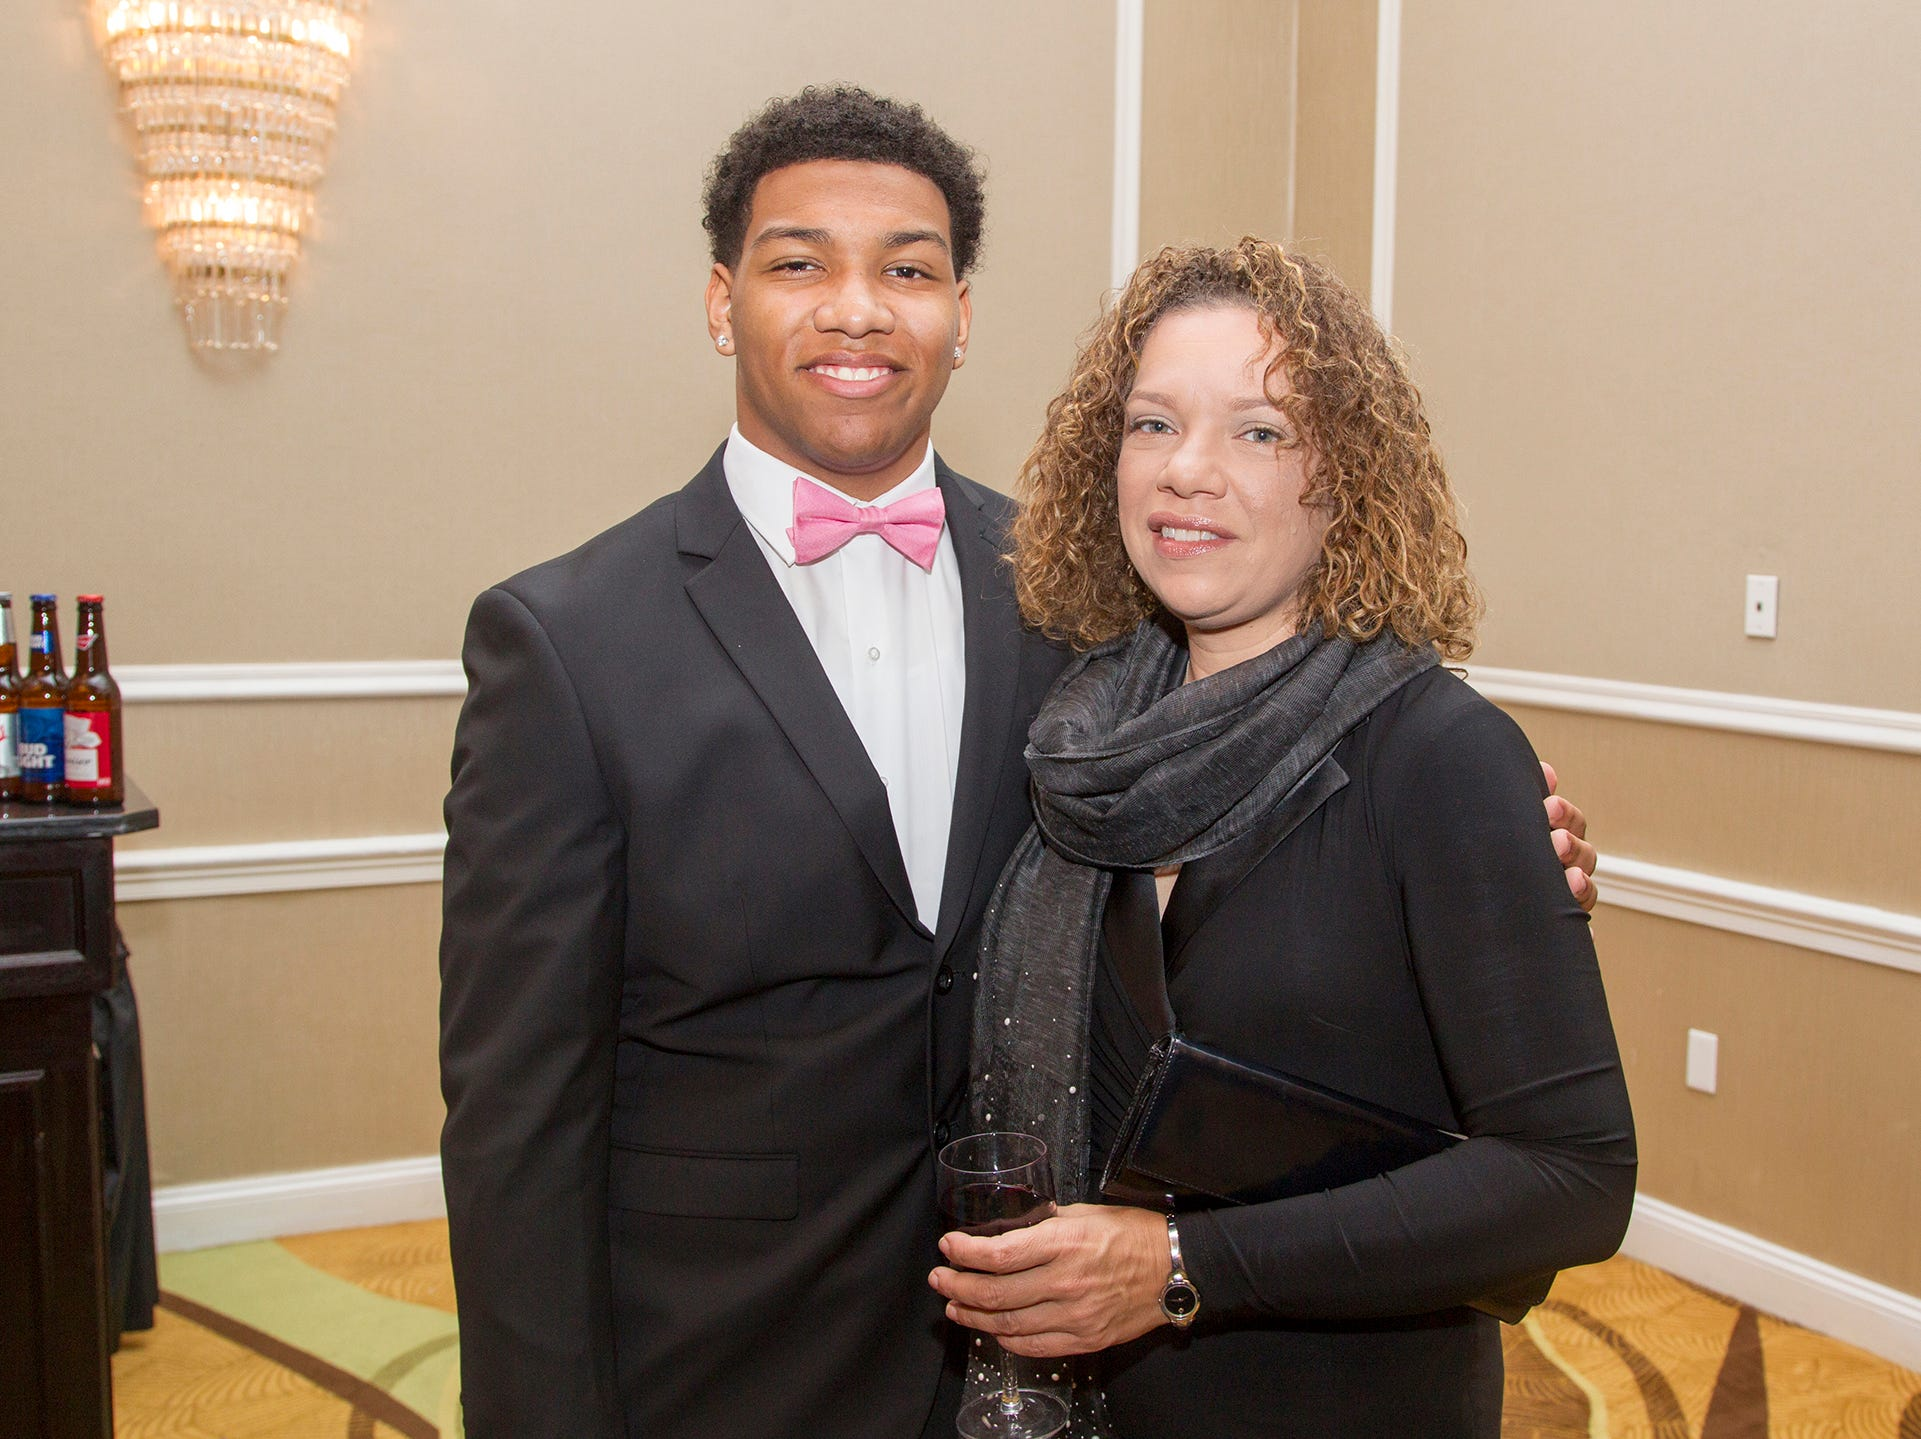 Ely and Tamara. Jessie Banks Foundation holds 16th annual Scholarship Awards Gala in Teaneck. 11/09/2018